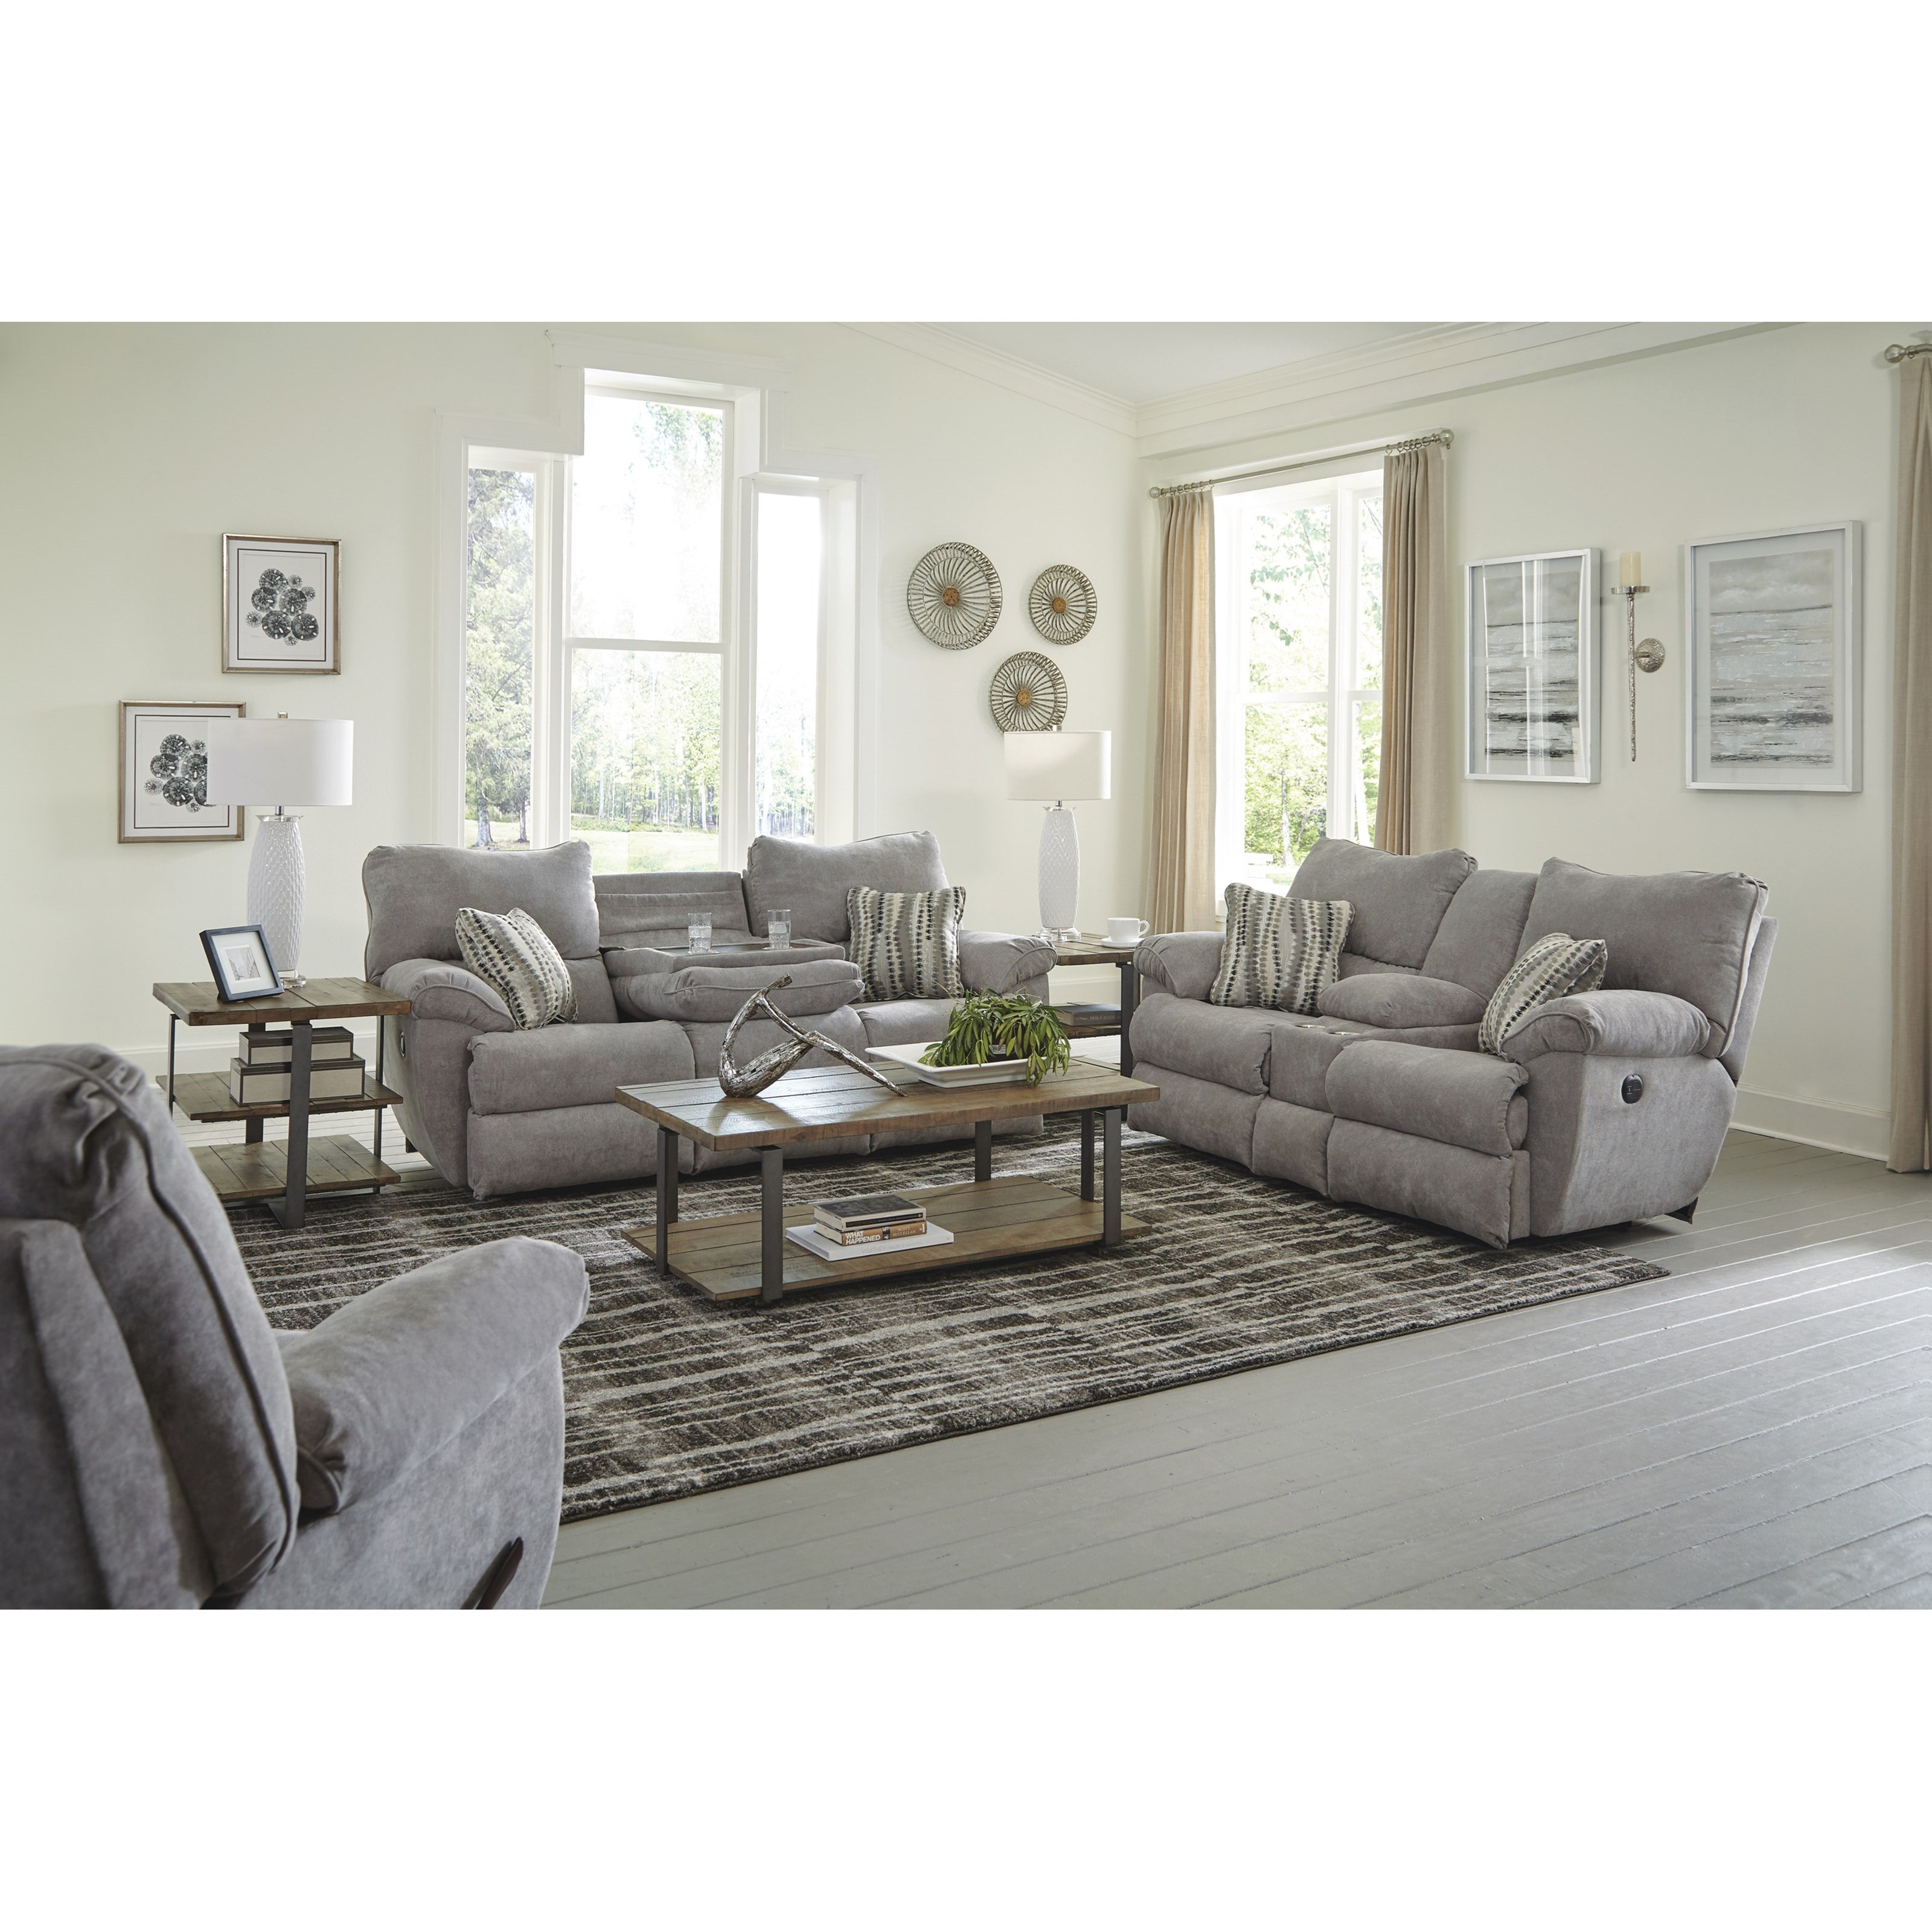 Sadler Reclining Living Room Group by Catnapper at Lindy's Furniture Company